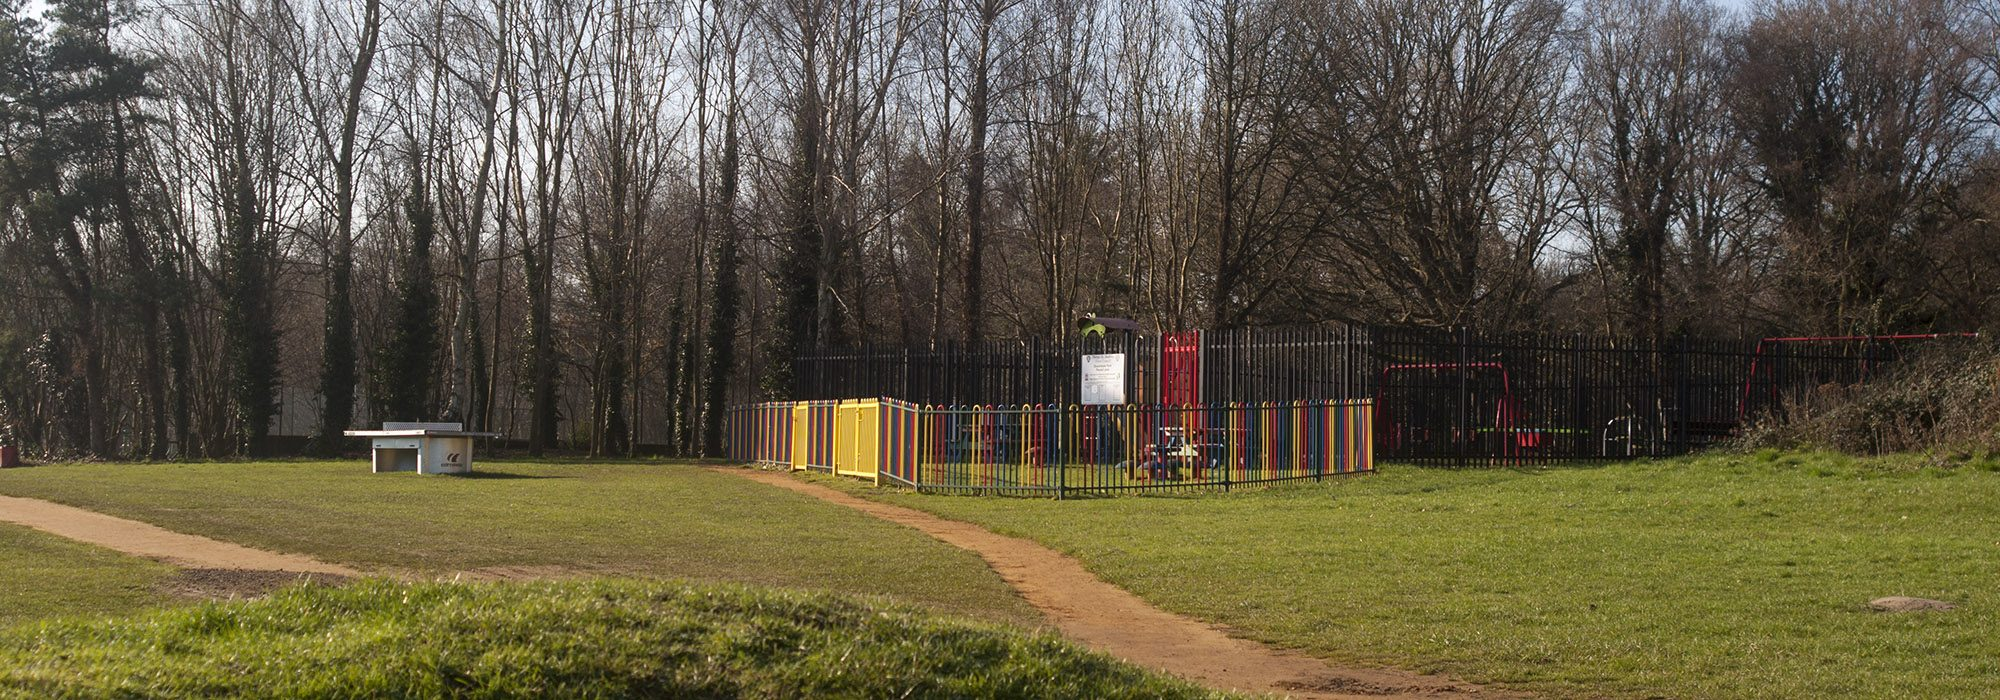 Play park near Town Hall